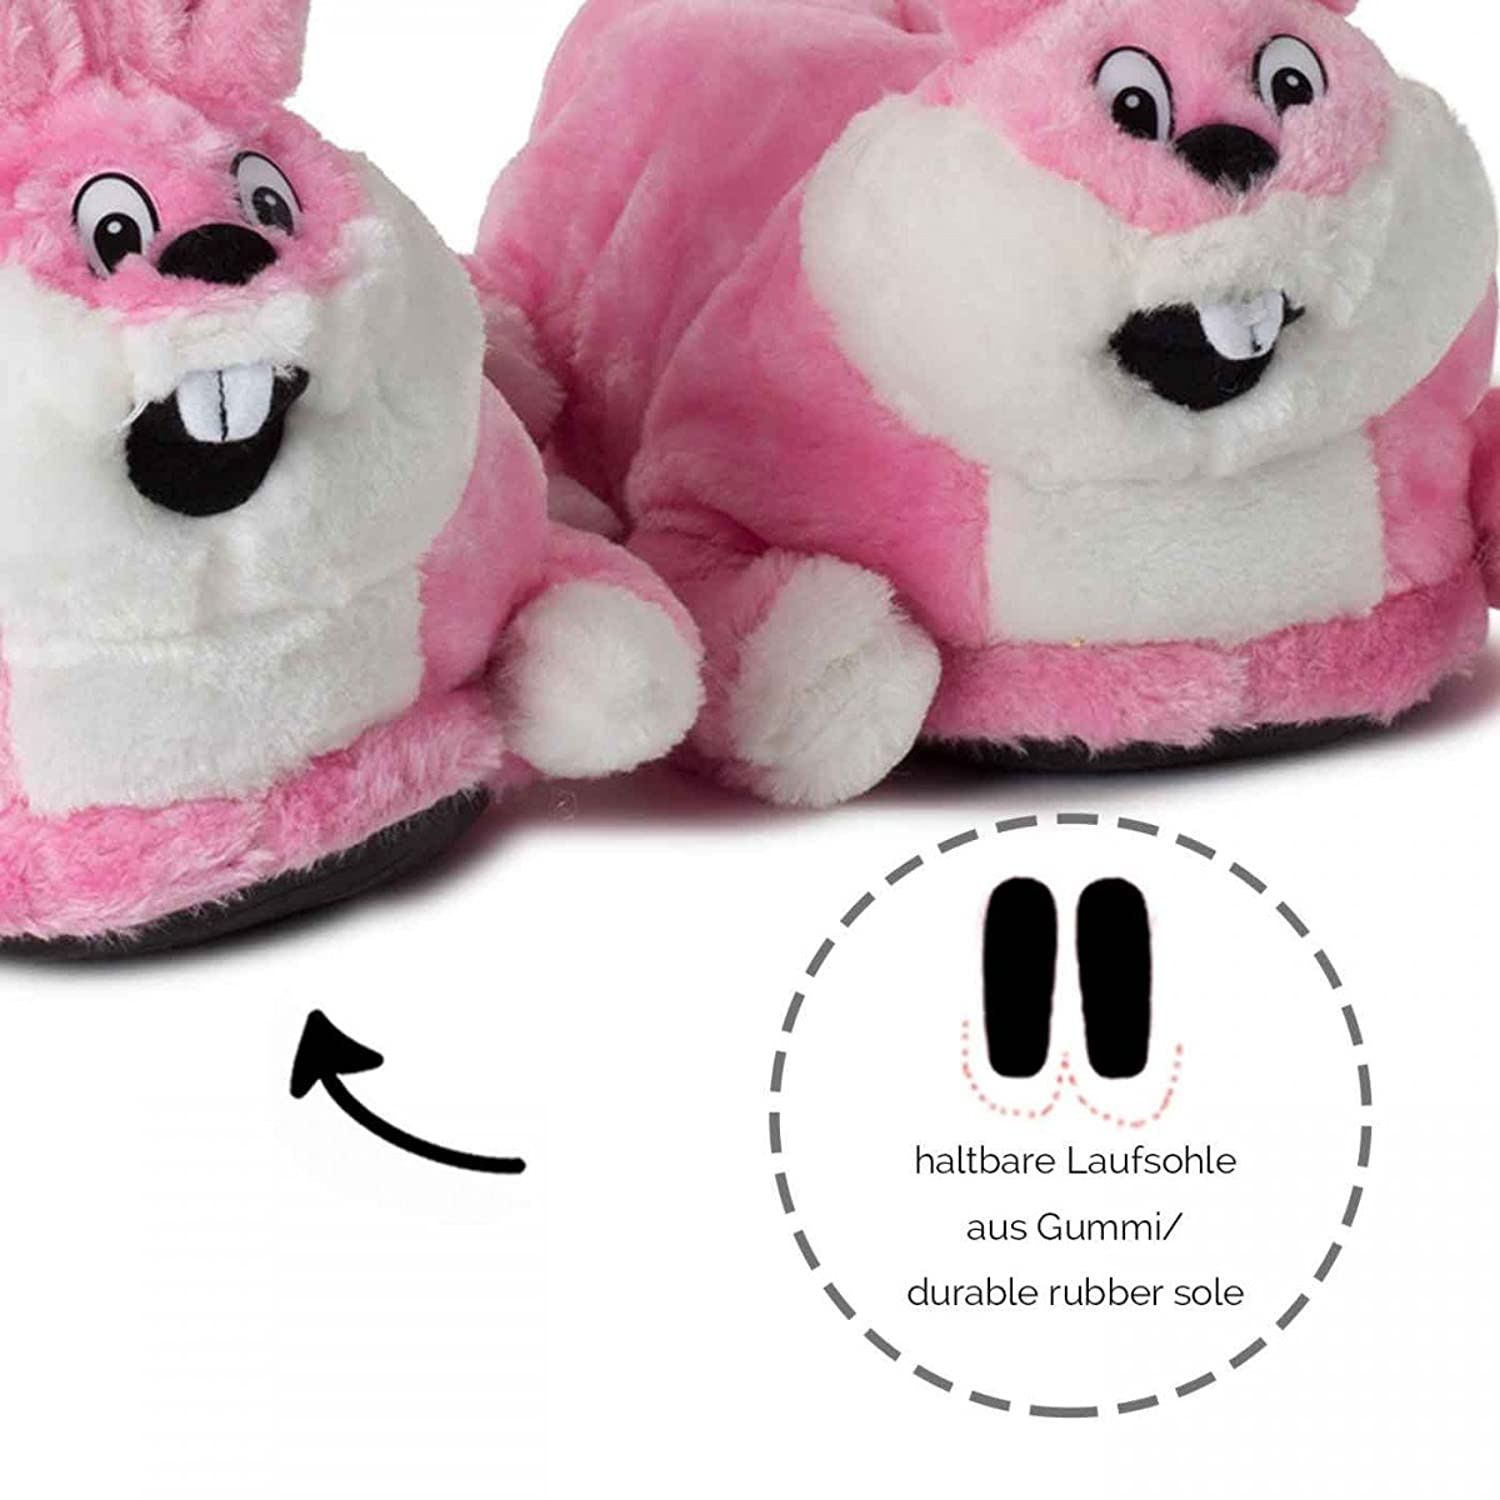 Bunny Plush Animal Novelty Slippers Pink For children and Adults Tested and  Certified For harmful substances** With Rubber Sole: Amazon.co.uk: Shoes &  Bags